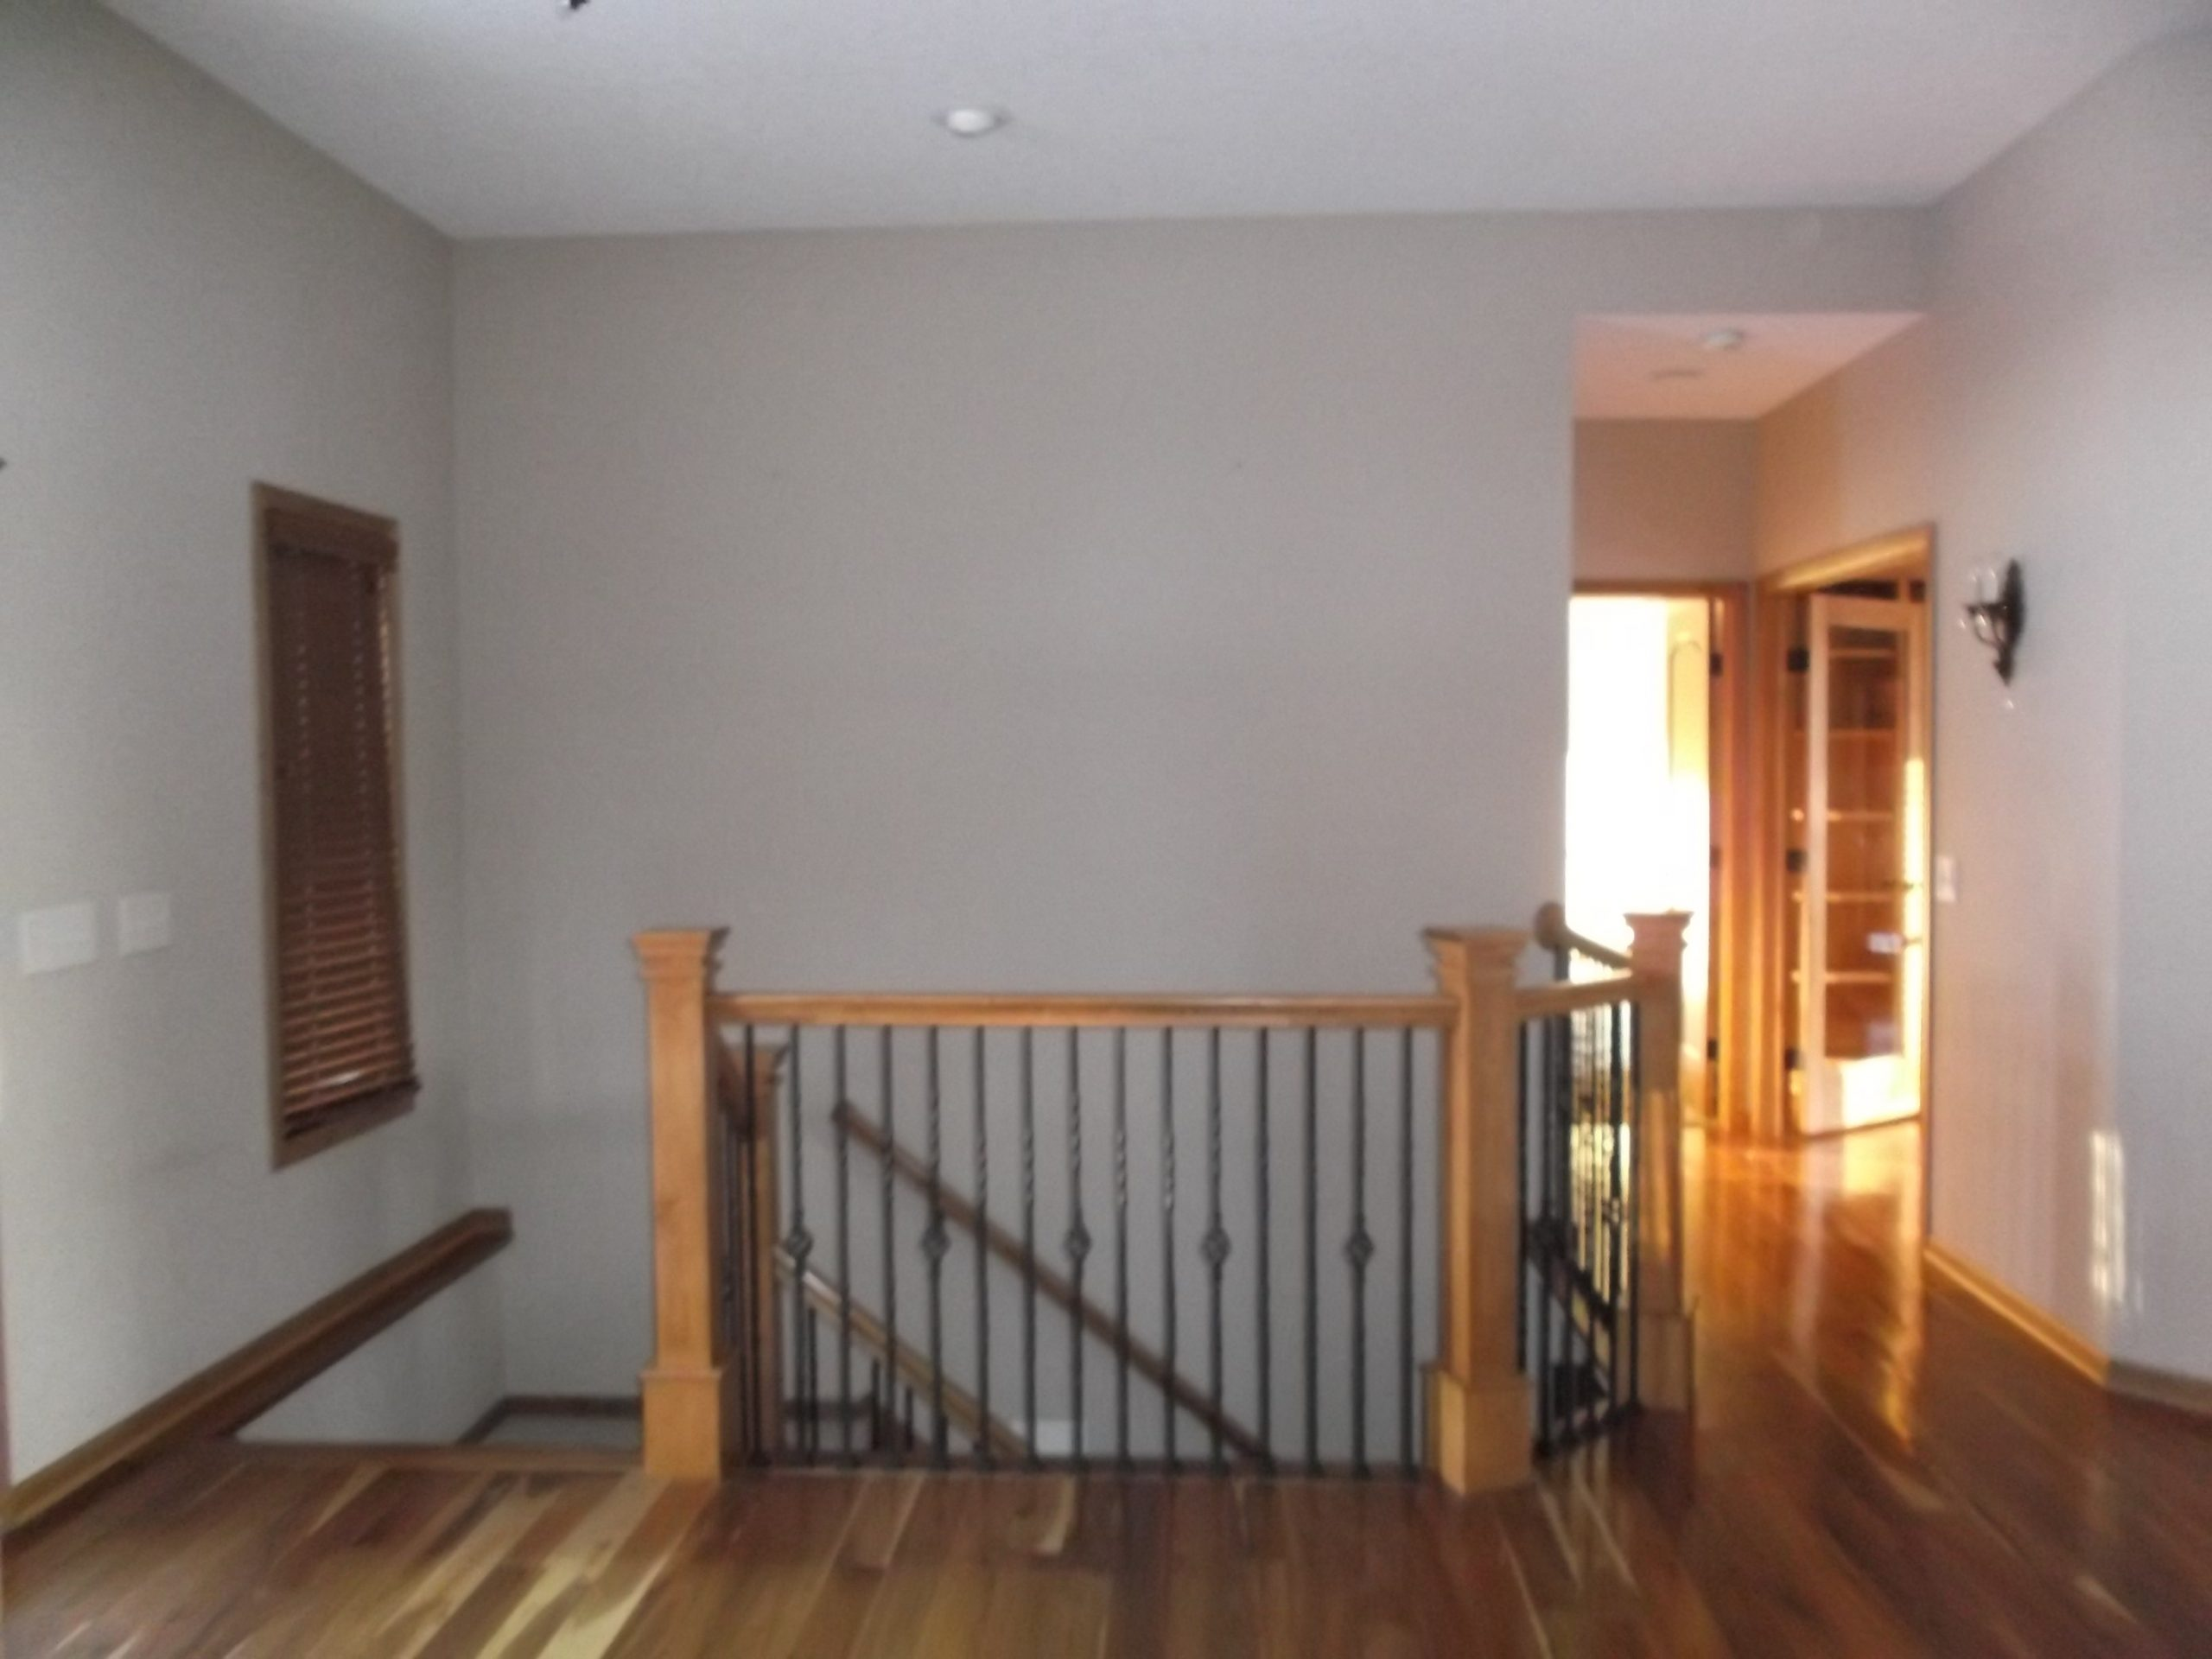 With 90s-style wood stain and busy ornamental iron bannister bars, this stairwell down to the lower level felt outdated, and the recessed light fixture above the steps was far too minimal for the space's needs.